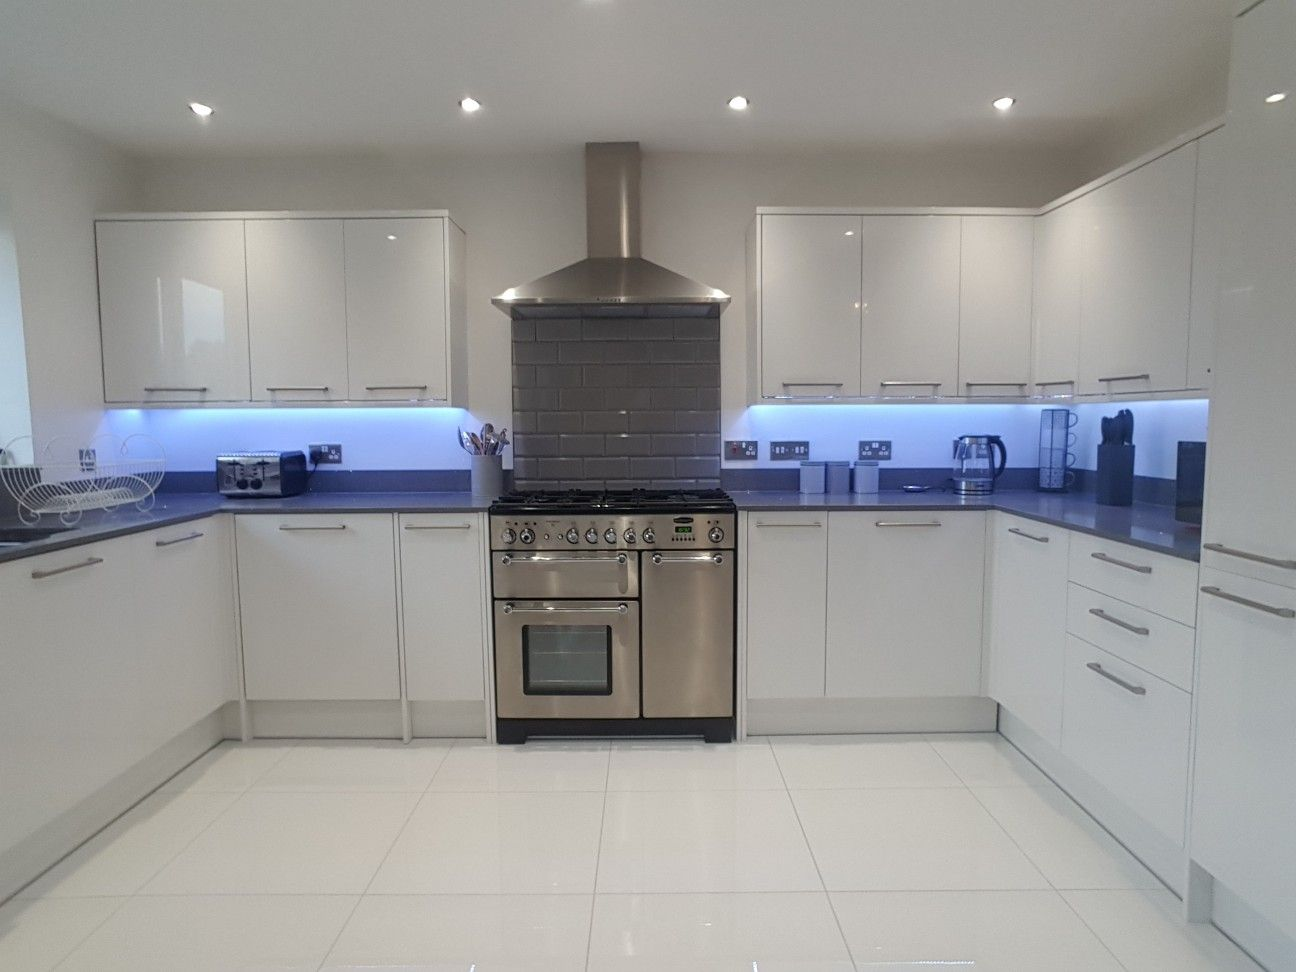 White High Gloss Kitchen With Range Oven Grey Mirror Chip Quartz Worktops And High Gloss Tiles F High Gloss Kitchen White Gloss Kitchen Gloss Kitchen Cabinets